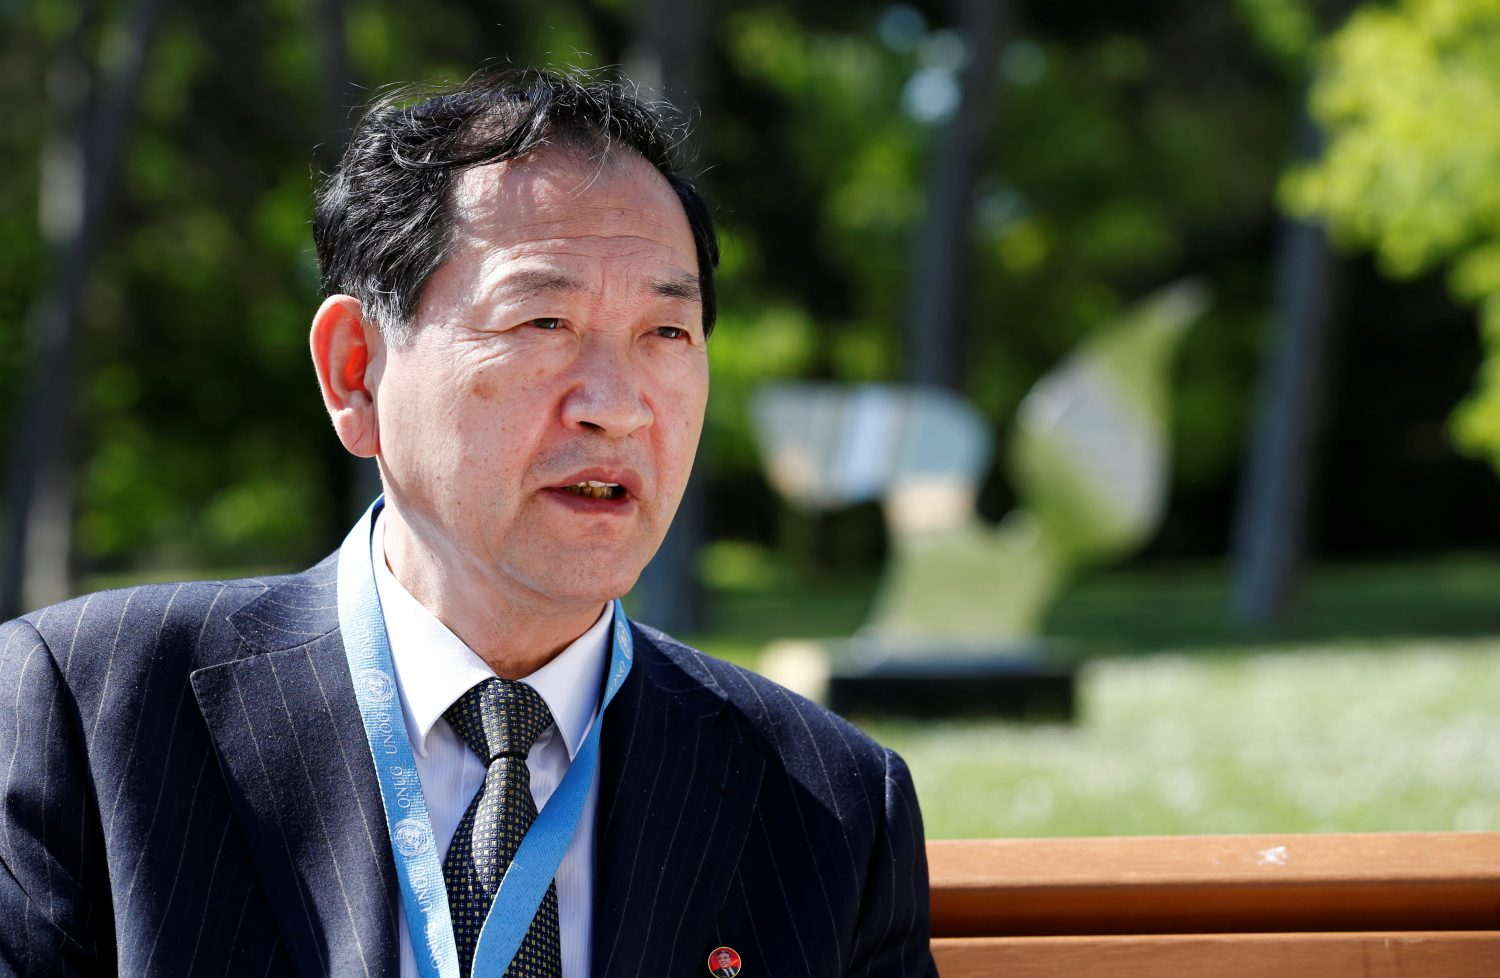 North Korea's ambassador to the United Nations Han Tae Song attends an interview with Reuters at the United Nations in Geneva, Switzerland, May 22, 2019. REUTERS/Denis Balibouse